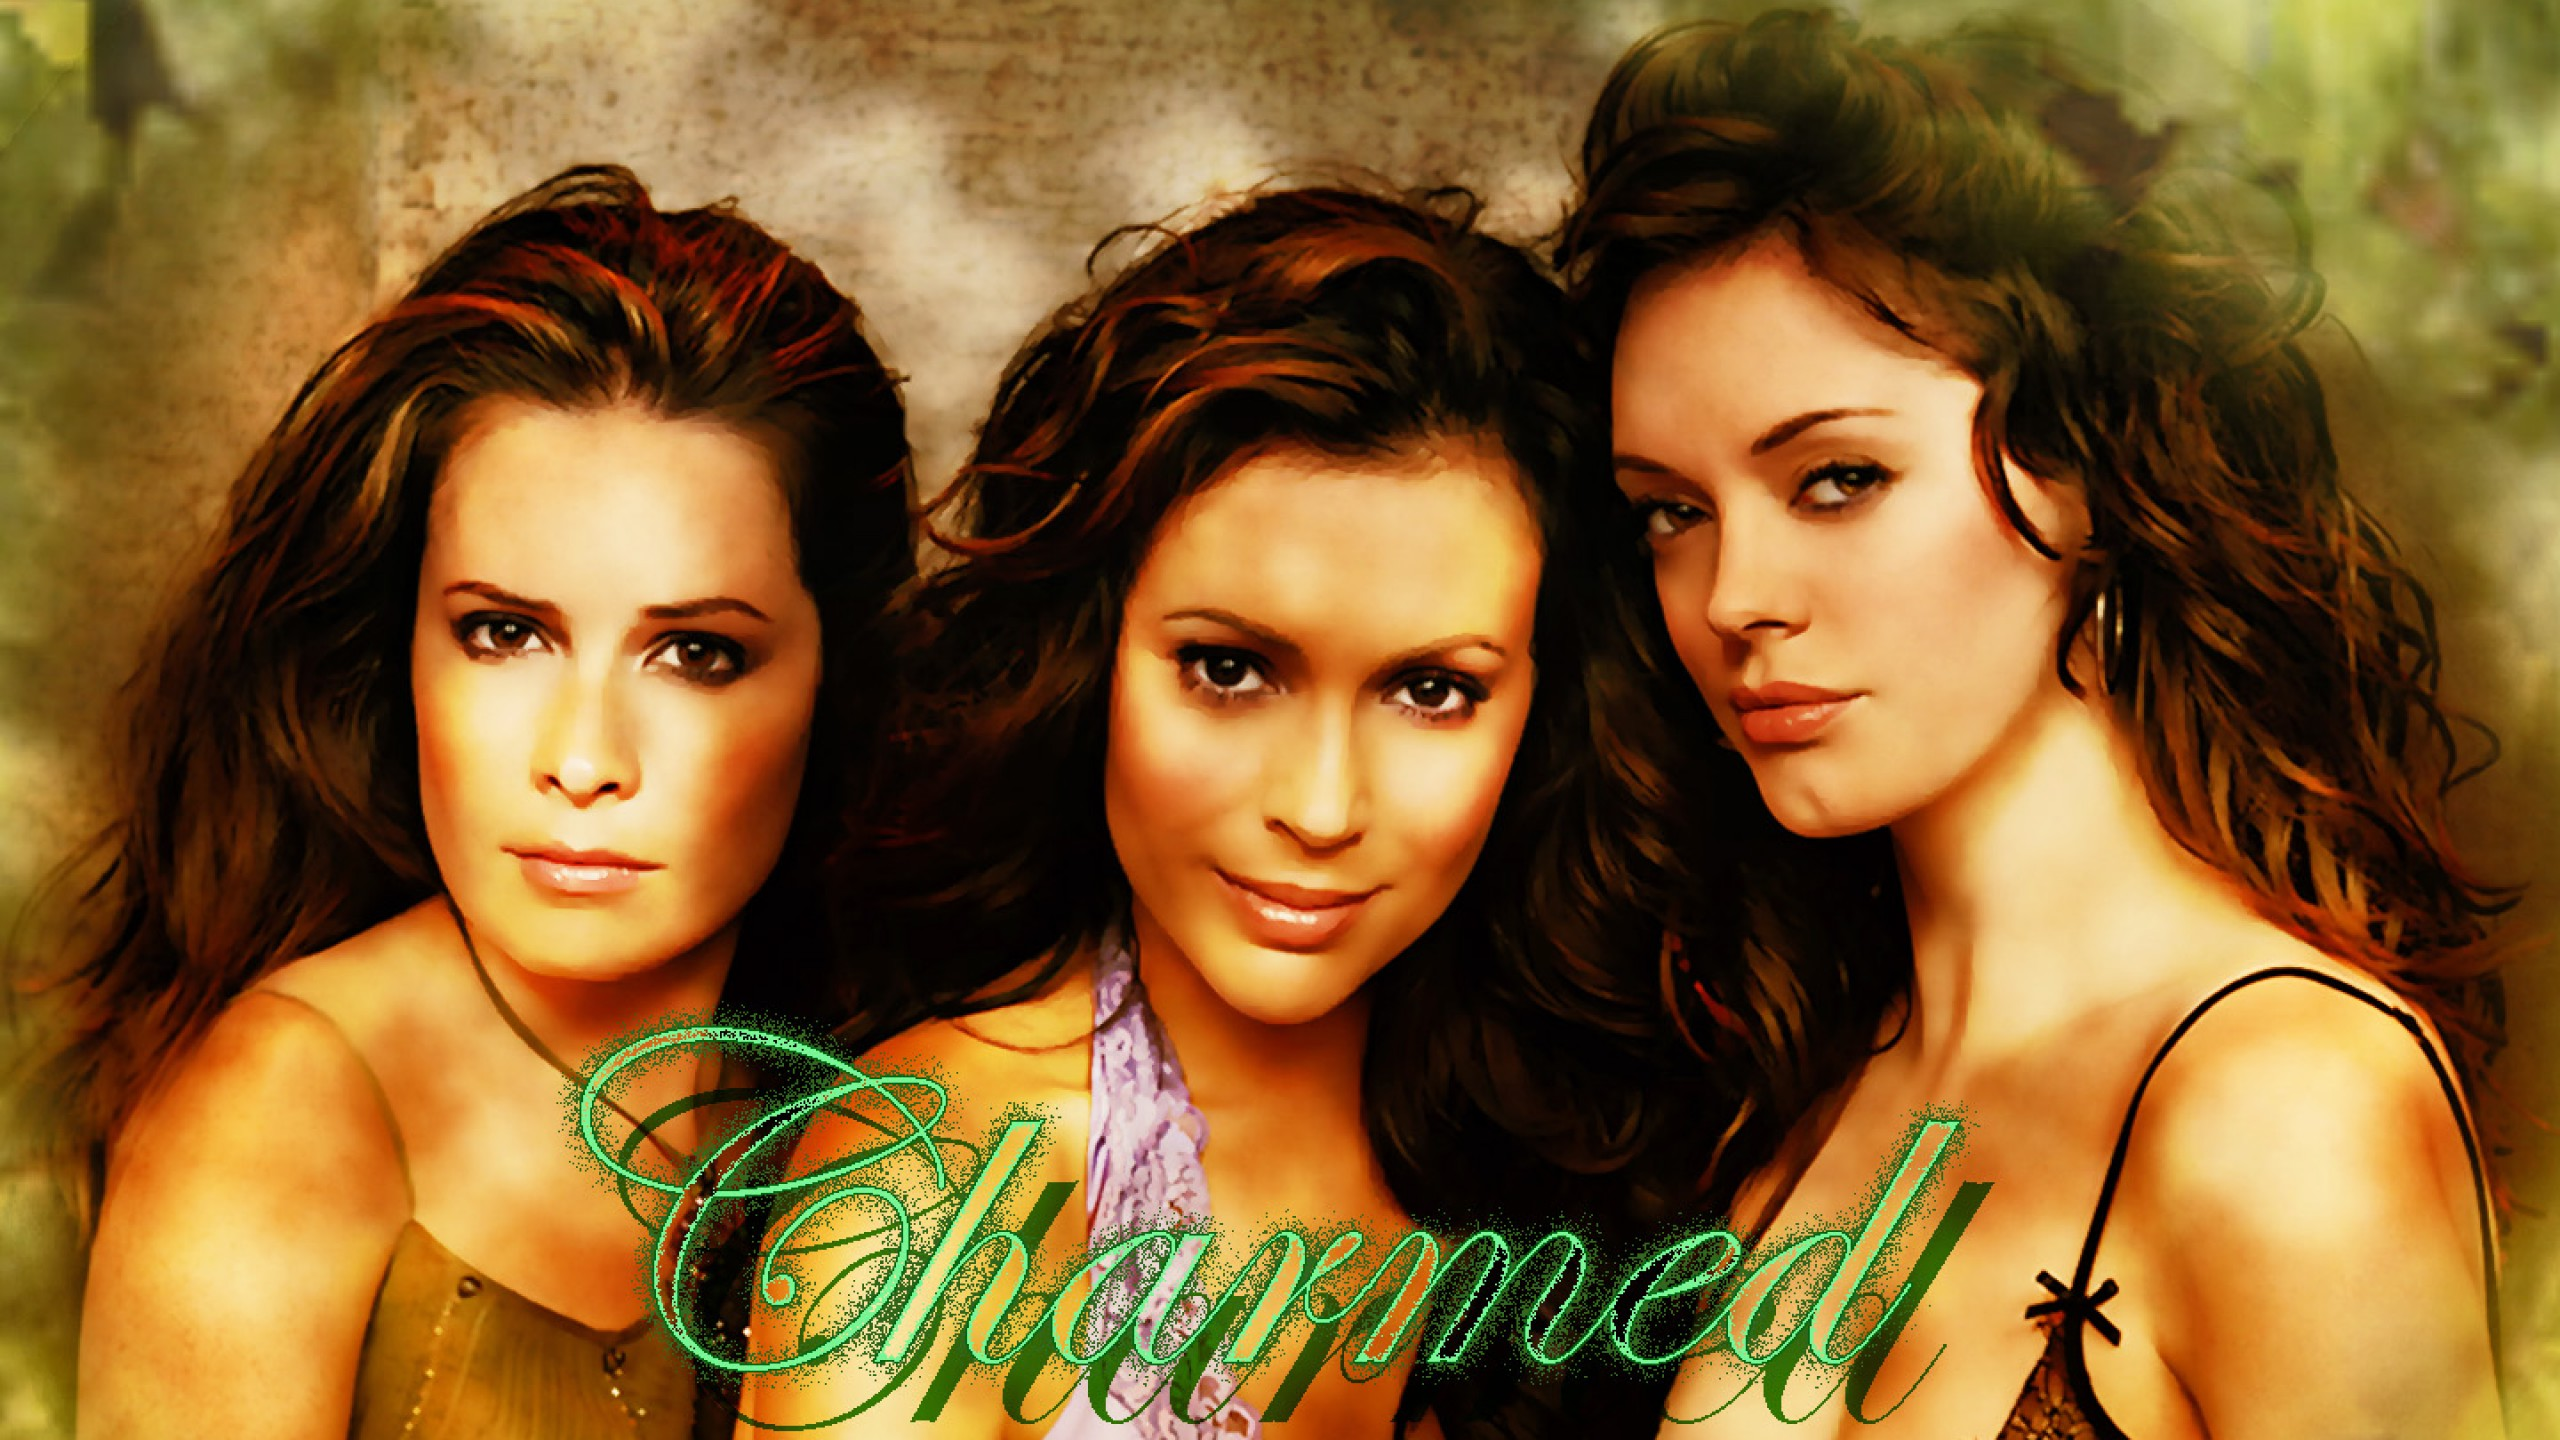 How To Make A Gif Your Wallpaper On Iphone Charmed Wallpapers Hd Pixelstalk Net